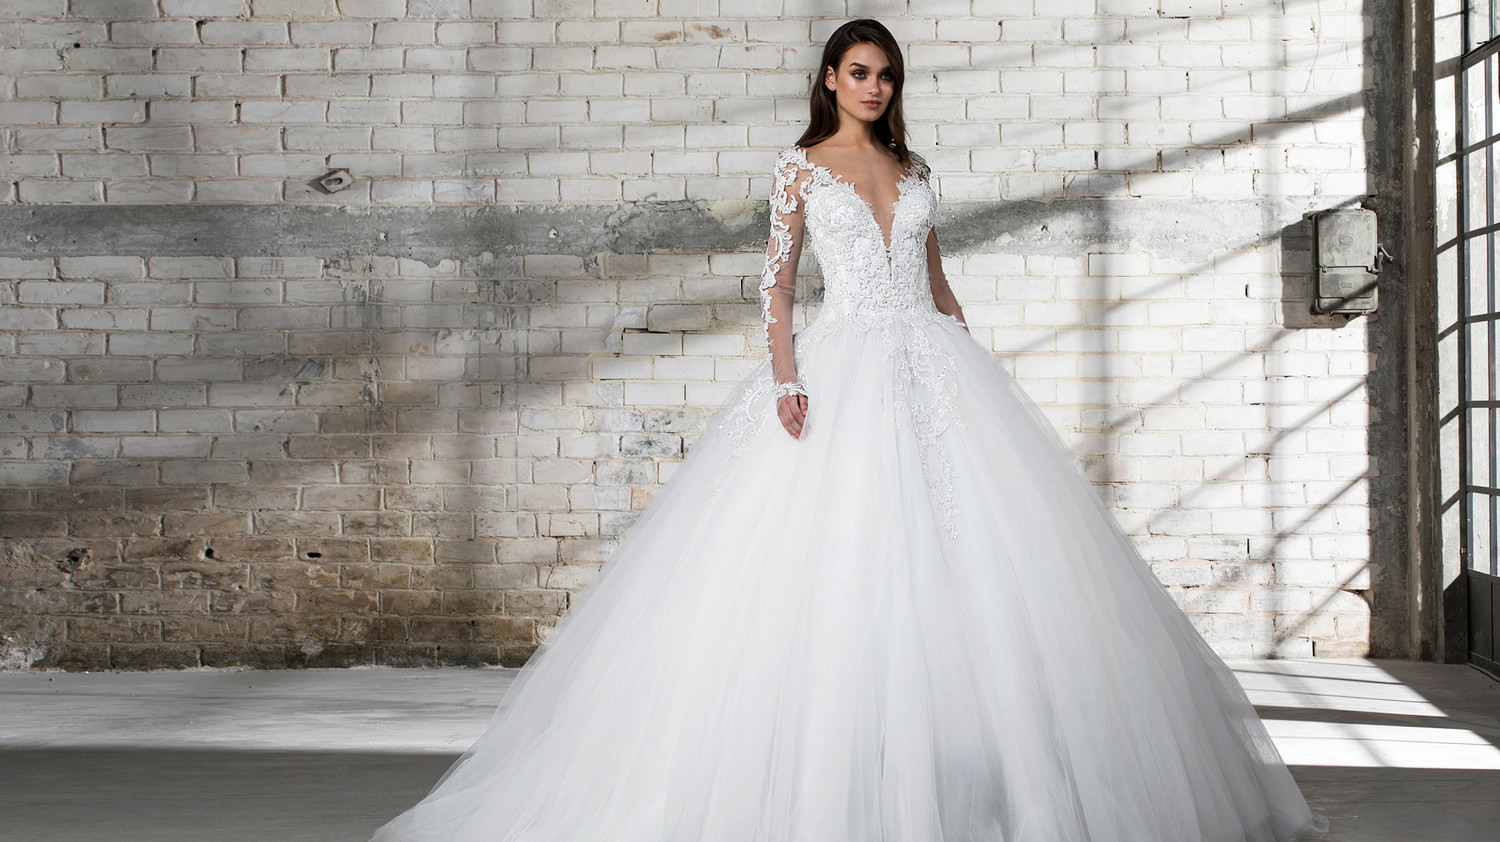 2019 year for lady- Tornai Pnina wedding dresses pictures